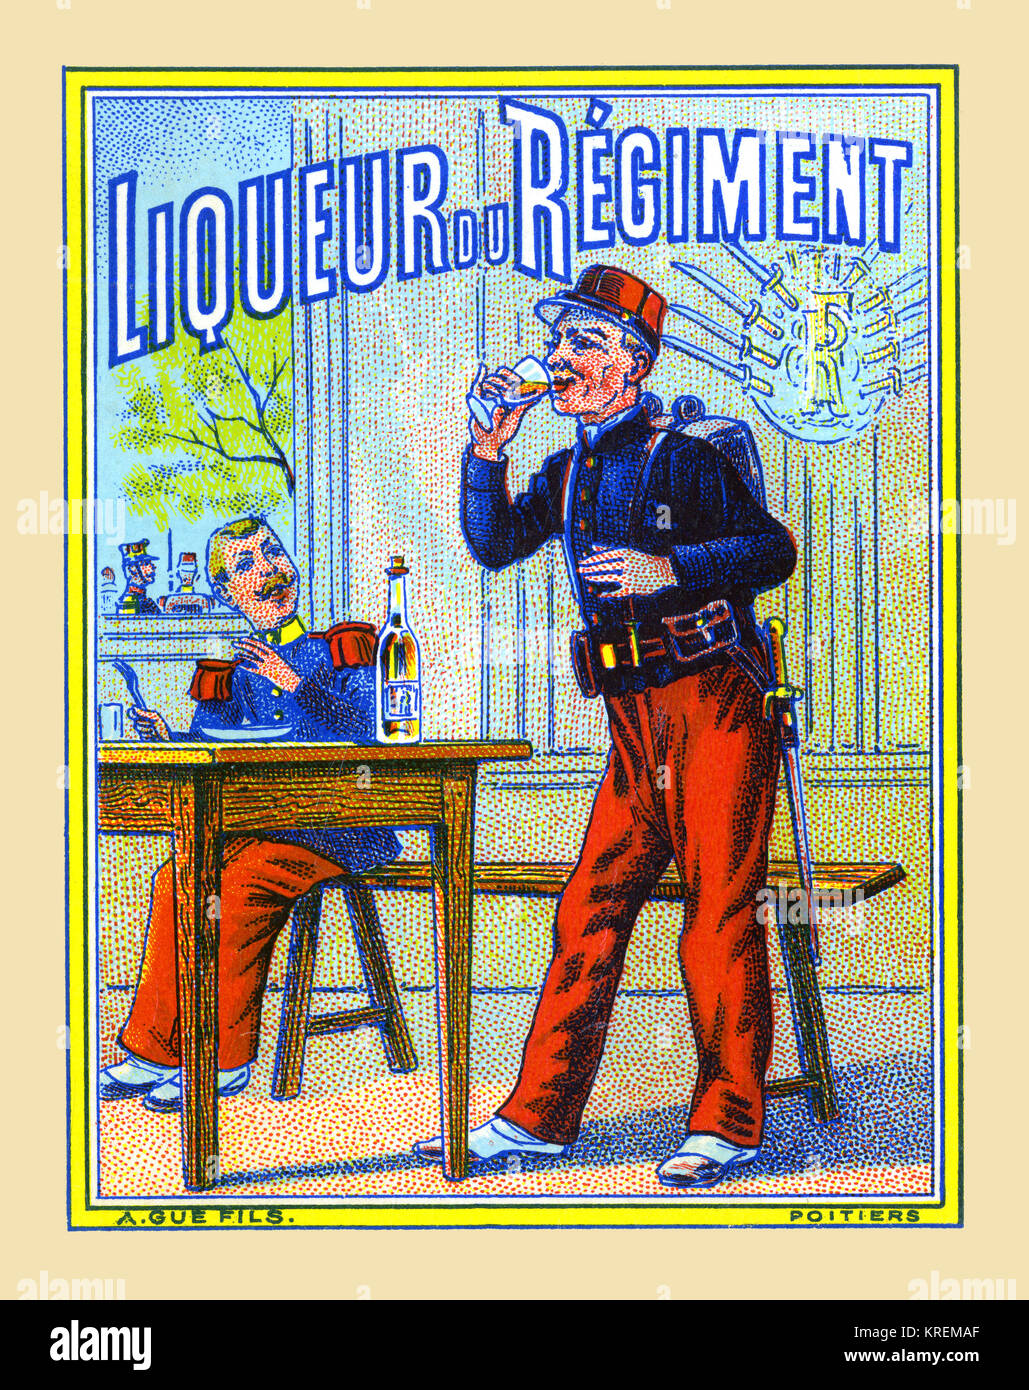 Liqueur du Regiment - Stock Image